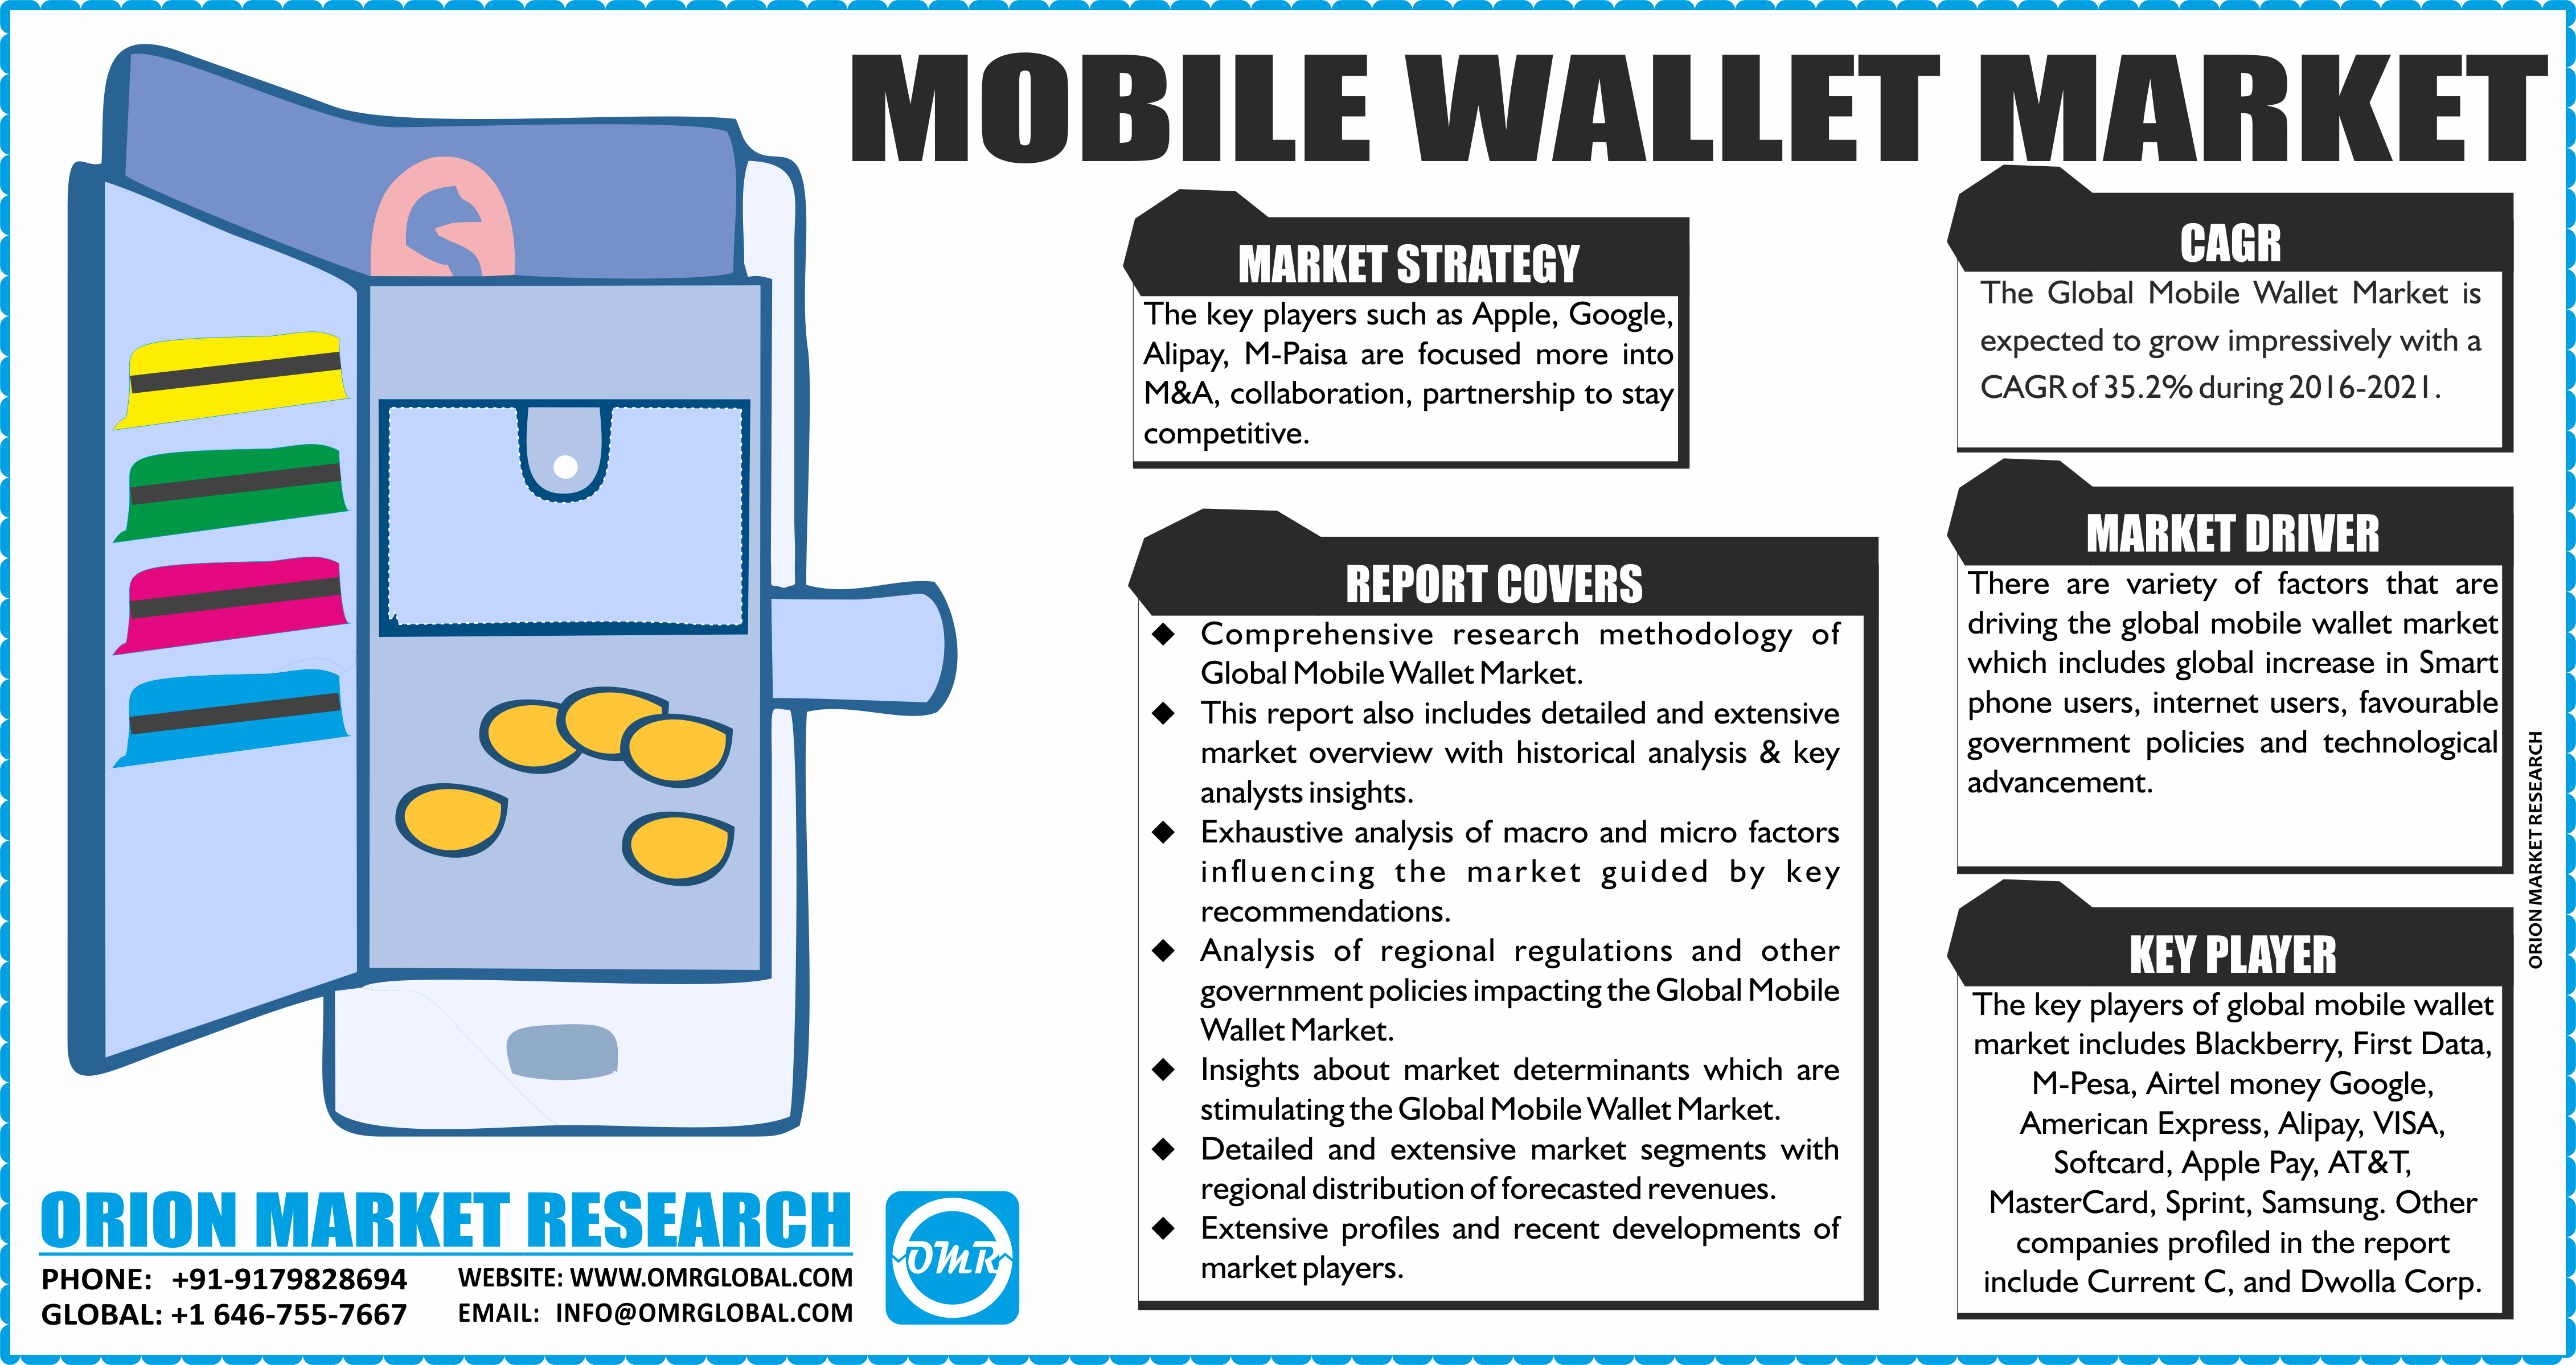 Mobile Wallet Market Size, Share,Growth Global mobile